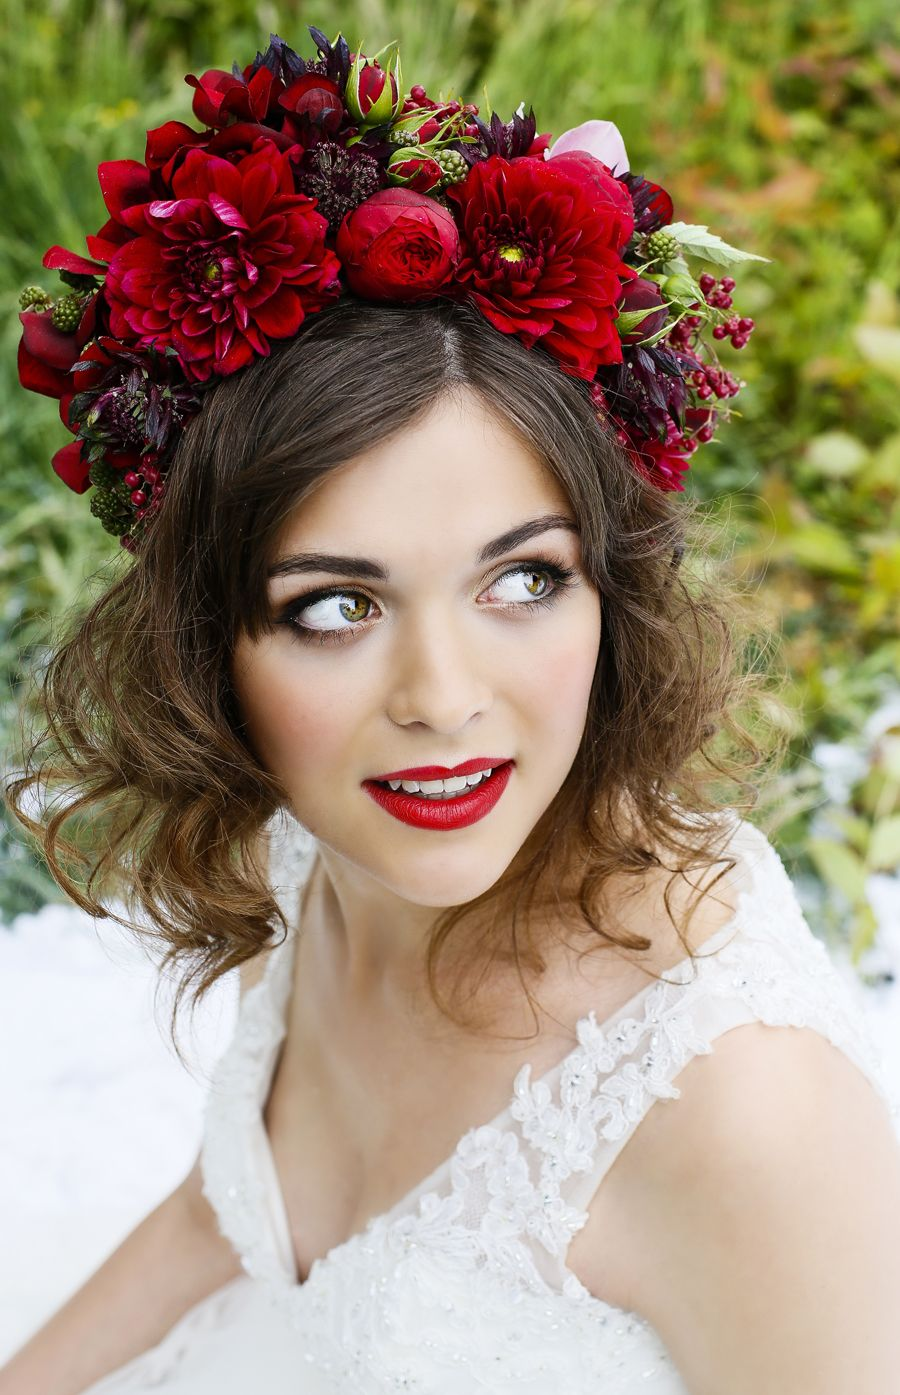 Boho Pins Top 10 Pins Of The Week Flower Crowns Christmas